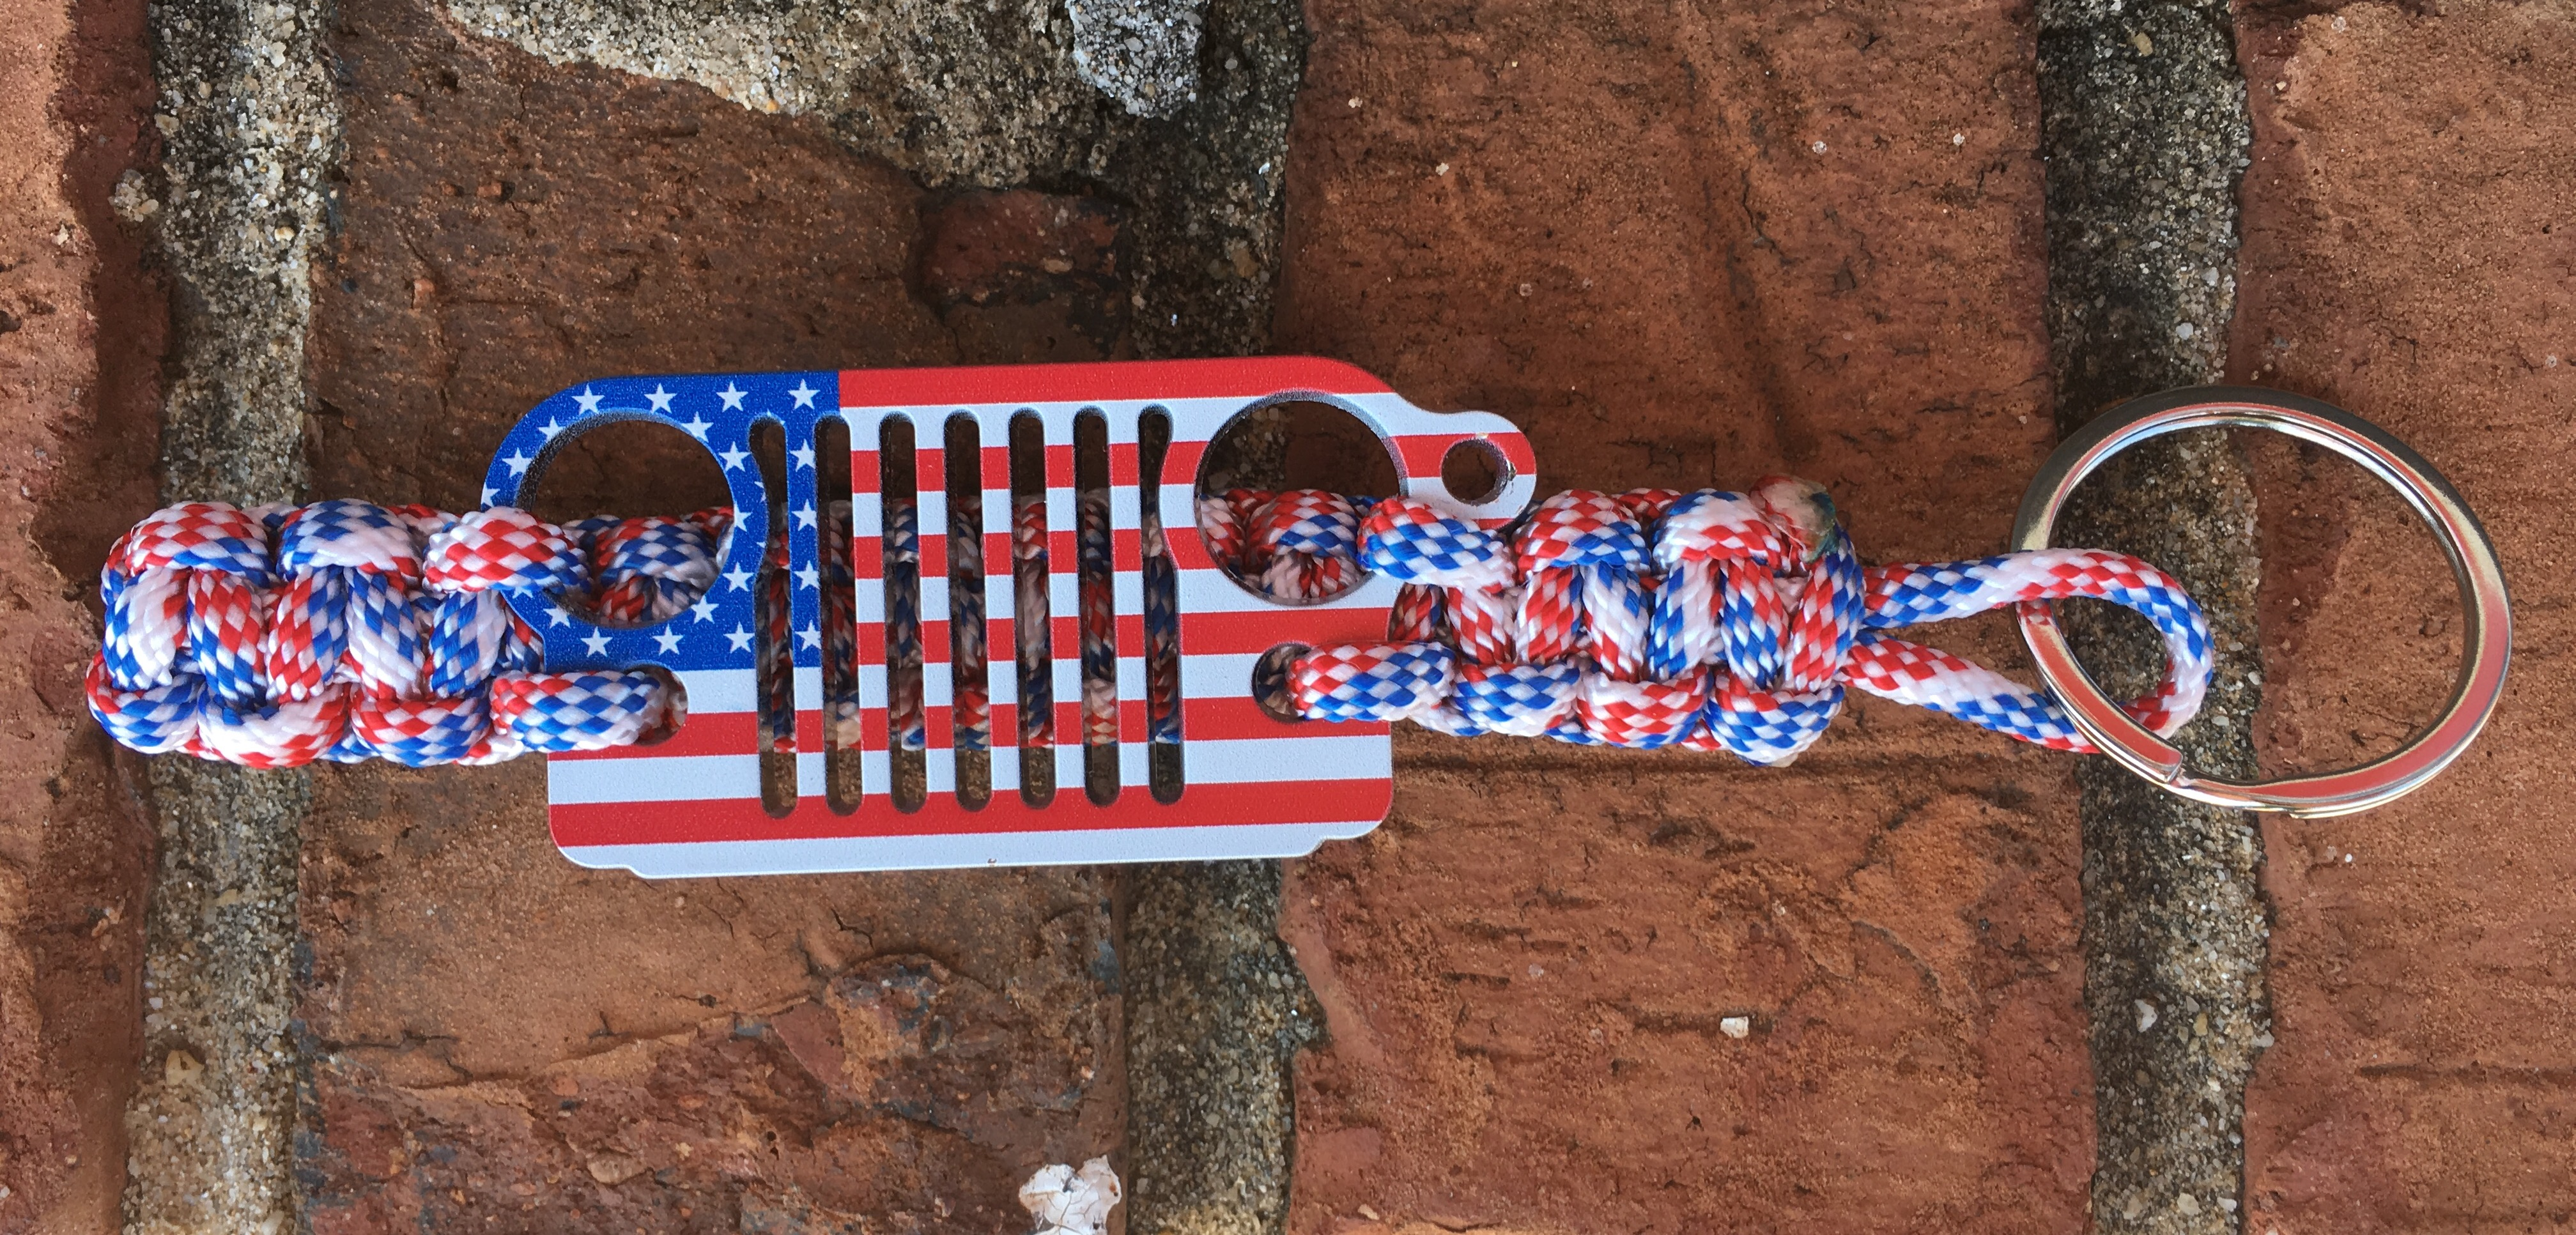 Jeep Grille Paracord Keychain in Red White and Blue with Flag Grille